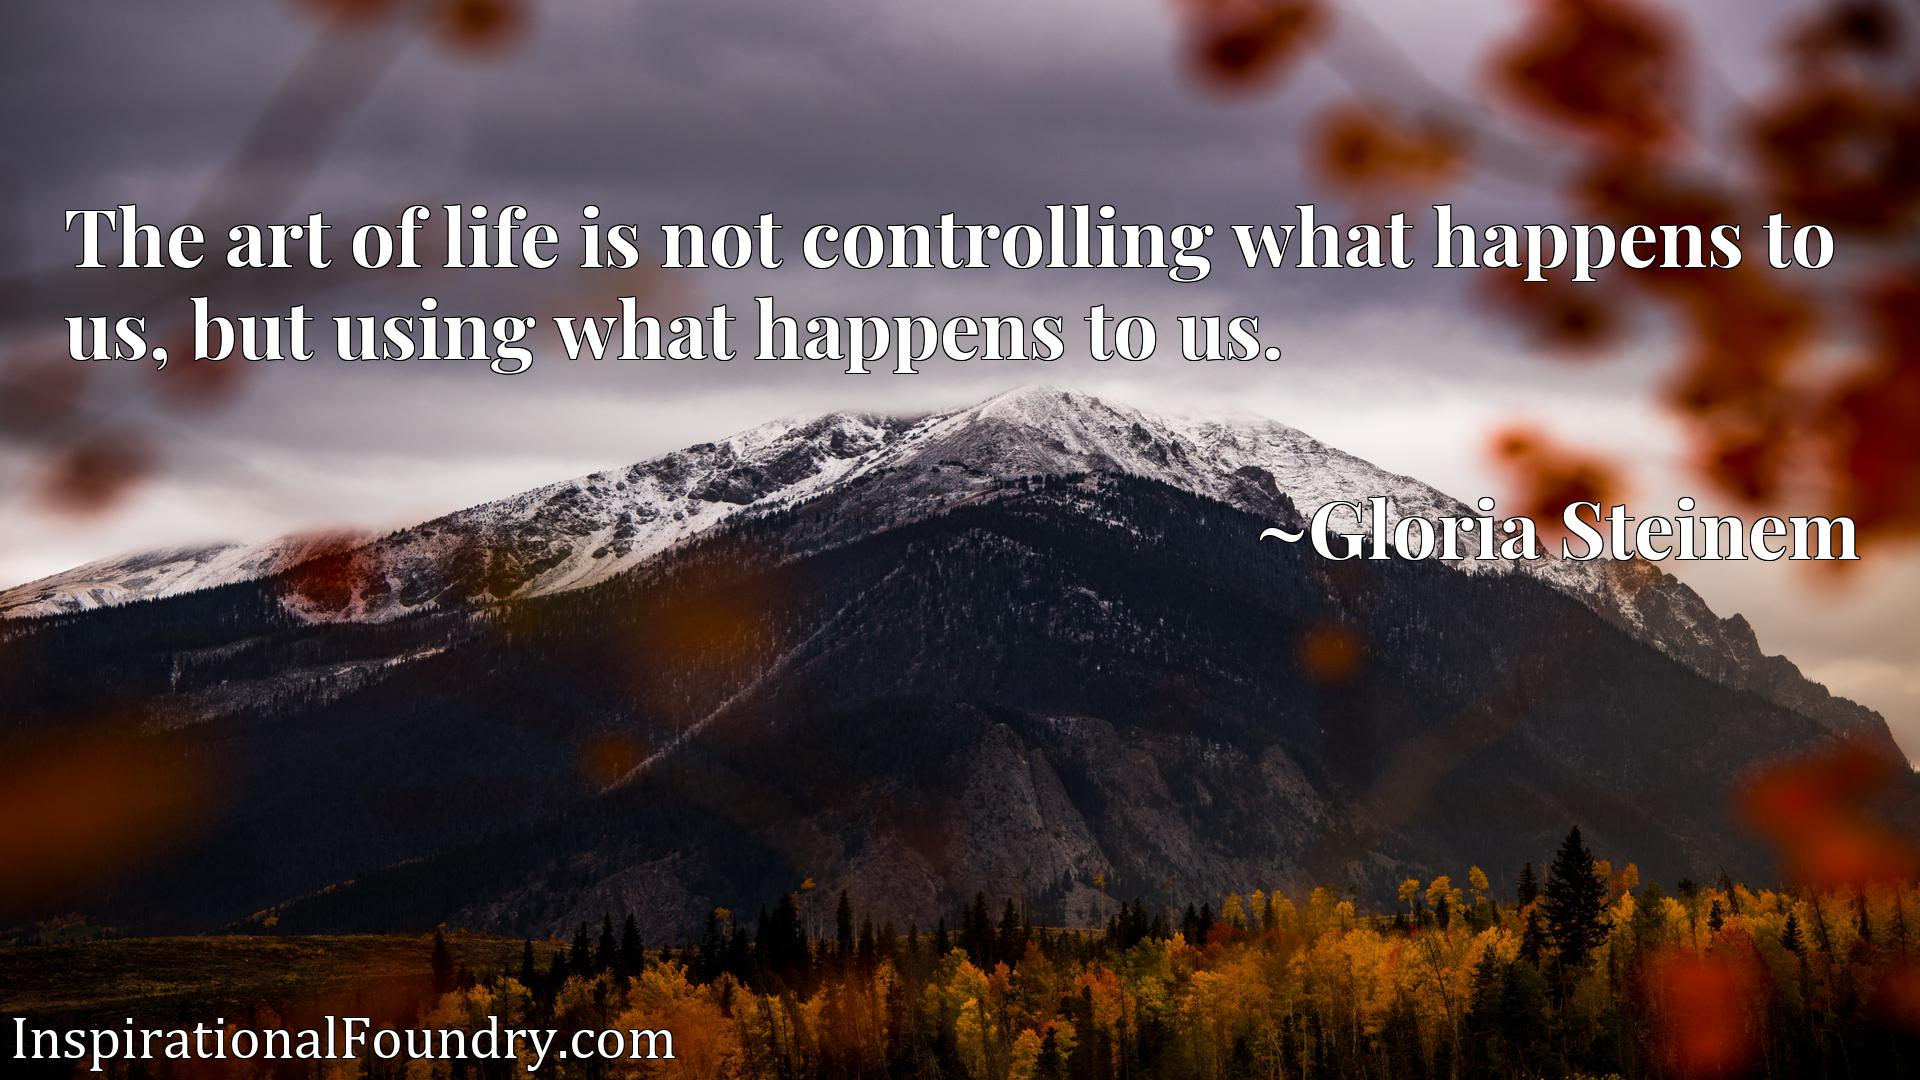 The art of life is not controlling what happens to us, but using what happens to us.